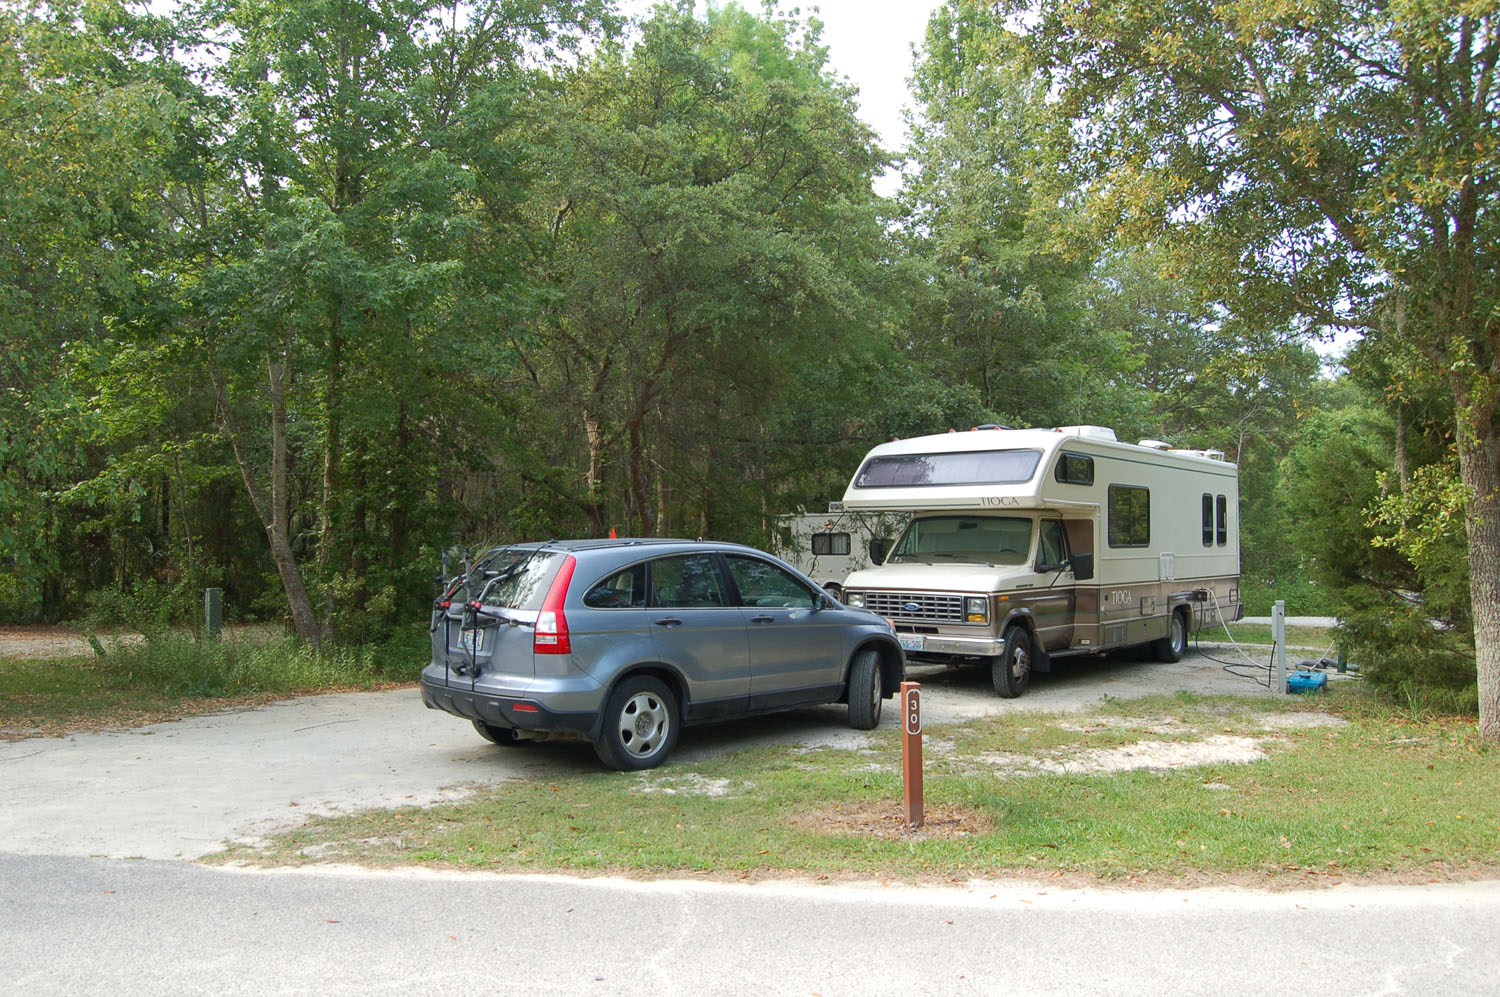 Image of campsite #30 at the Campground at James Island County Park